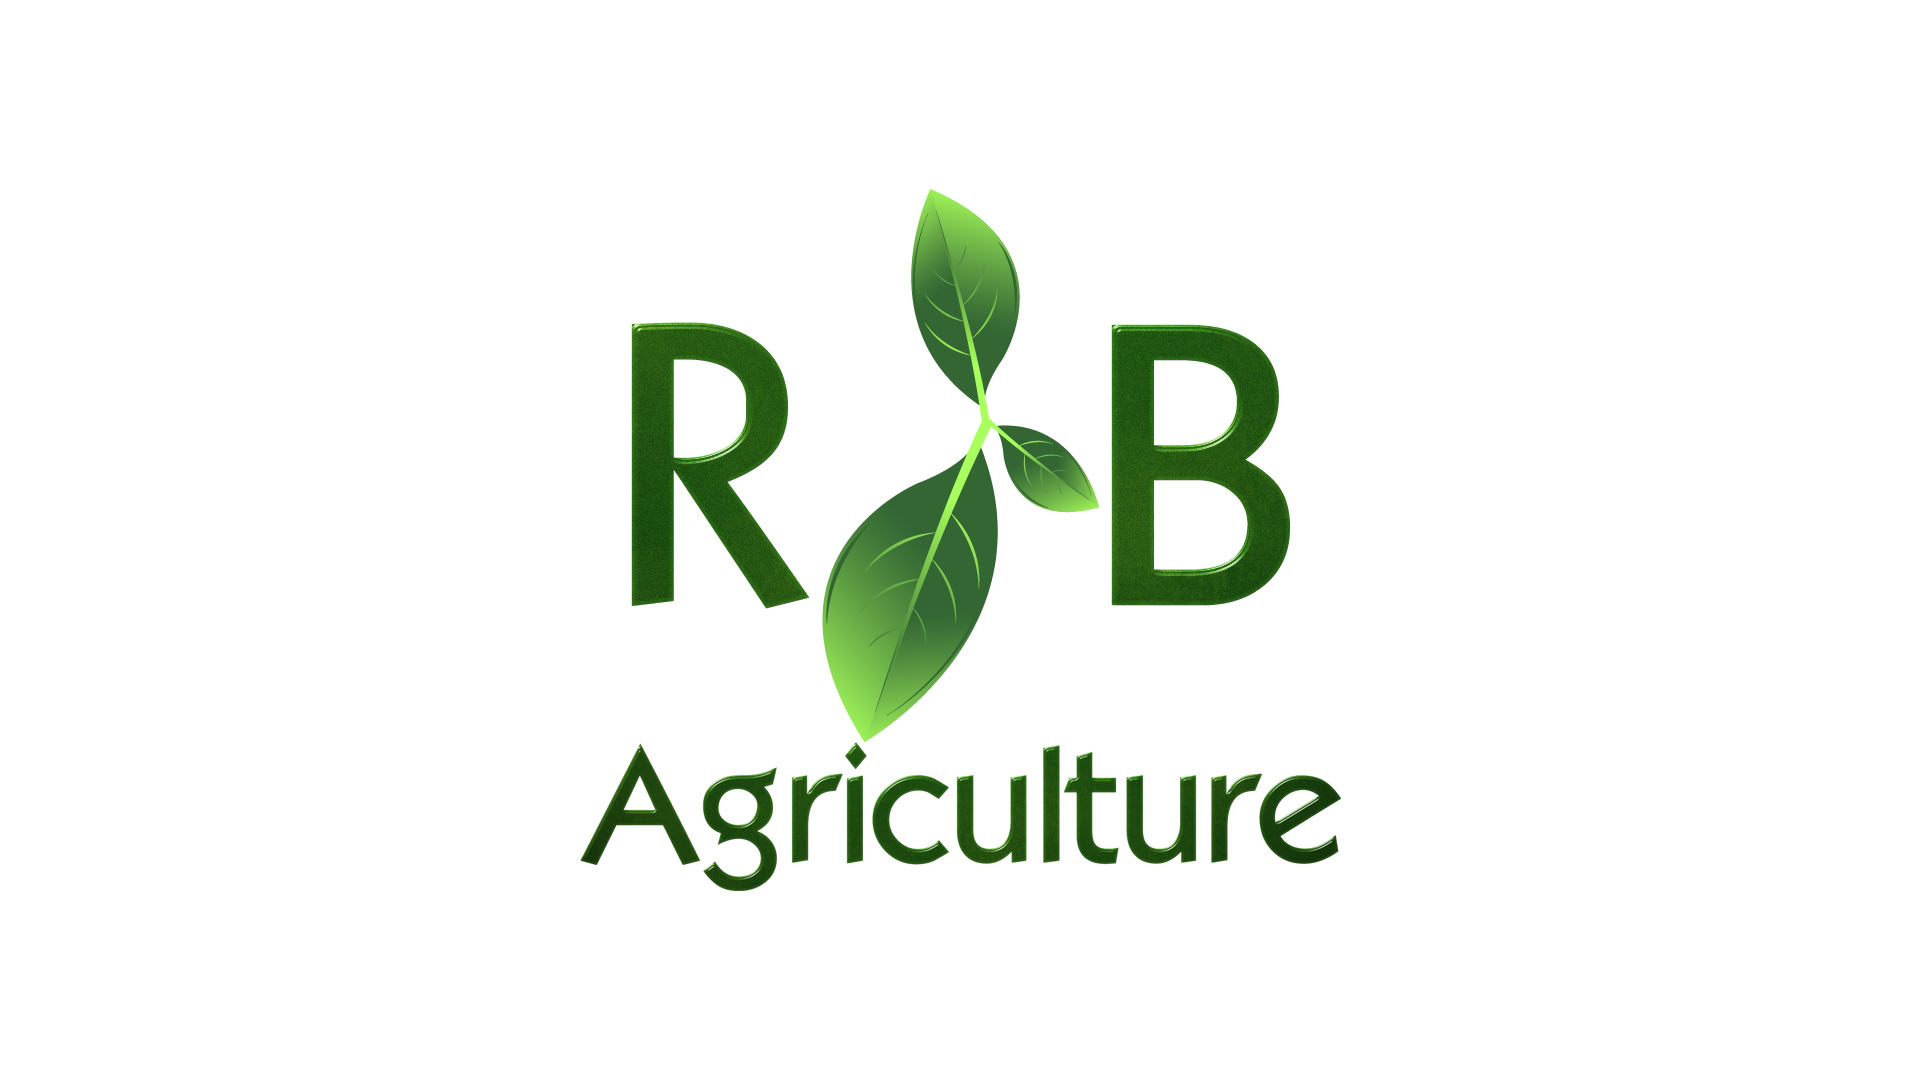 Logo Design by Mohammad Buhnad - Entry No. 87 in the Logo Design Contest Captivating Logo Design for R & B Agriculture.